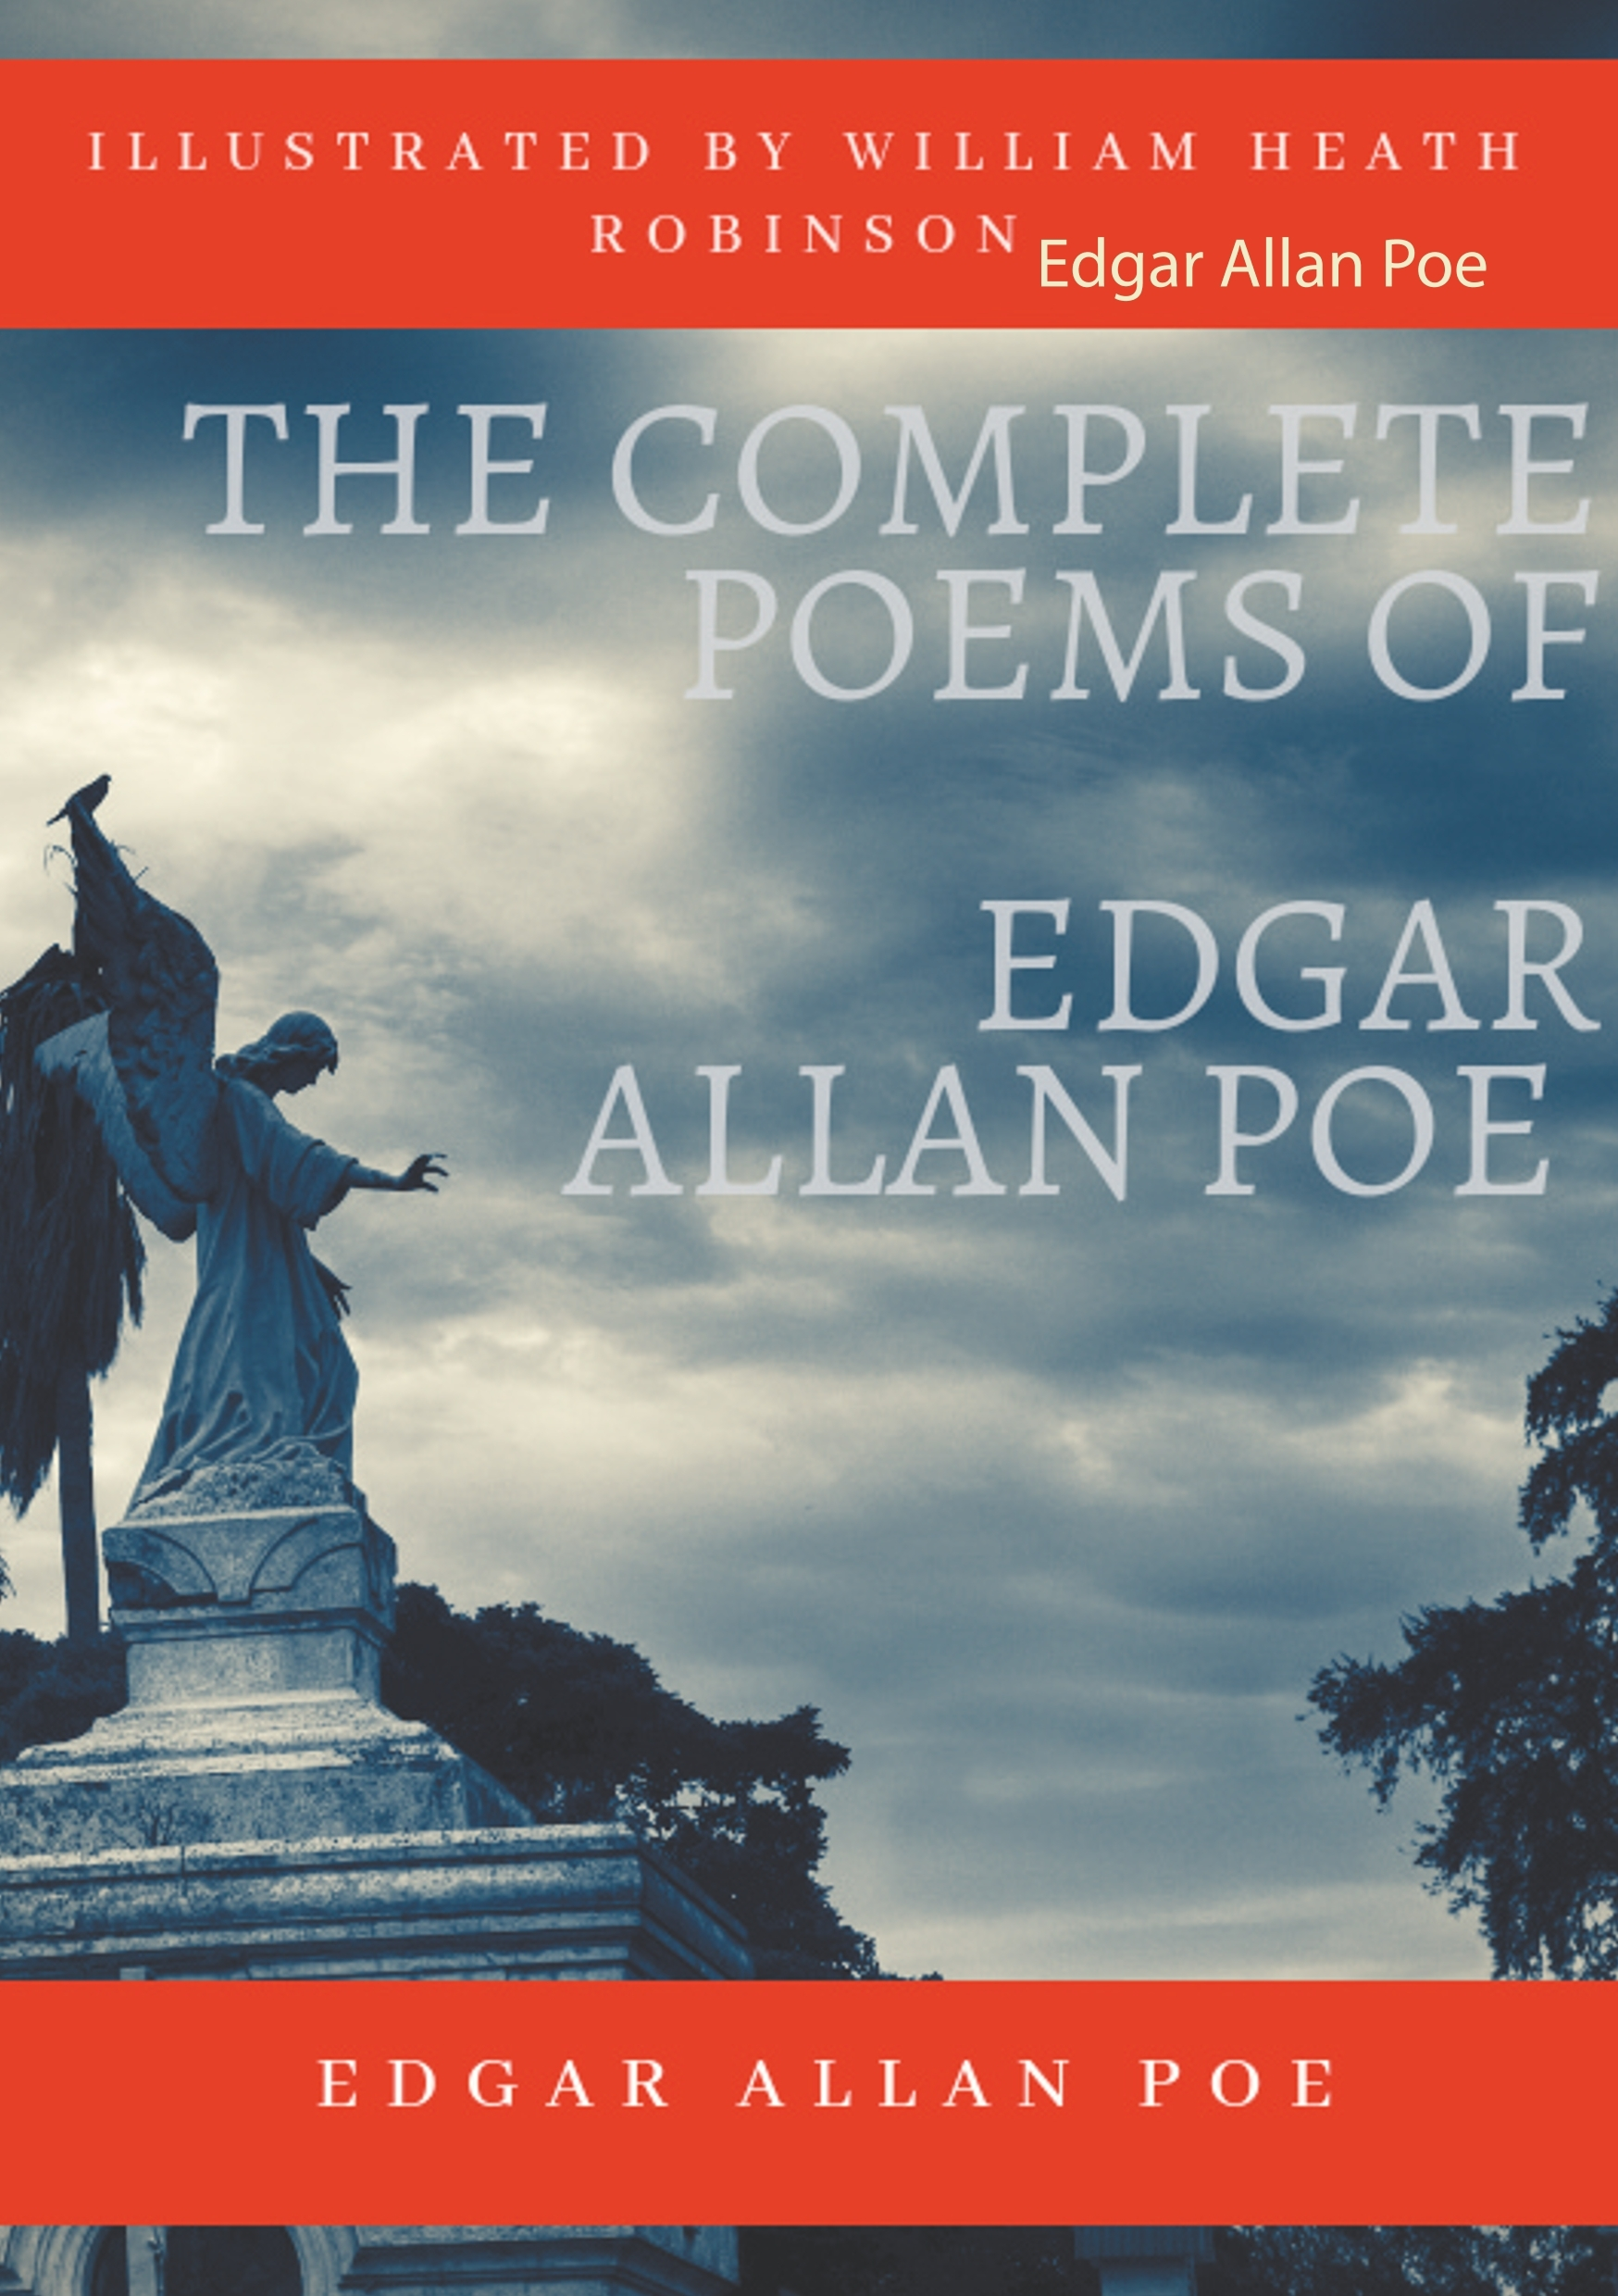 POETRY BY POE - T01 - THE COMPLETE POEMS OF EDGAR ALLAN POE ILLUSTRATED BY WILLIAM HEATH ROBINSON -